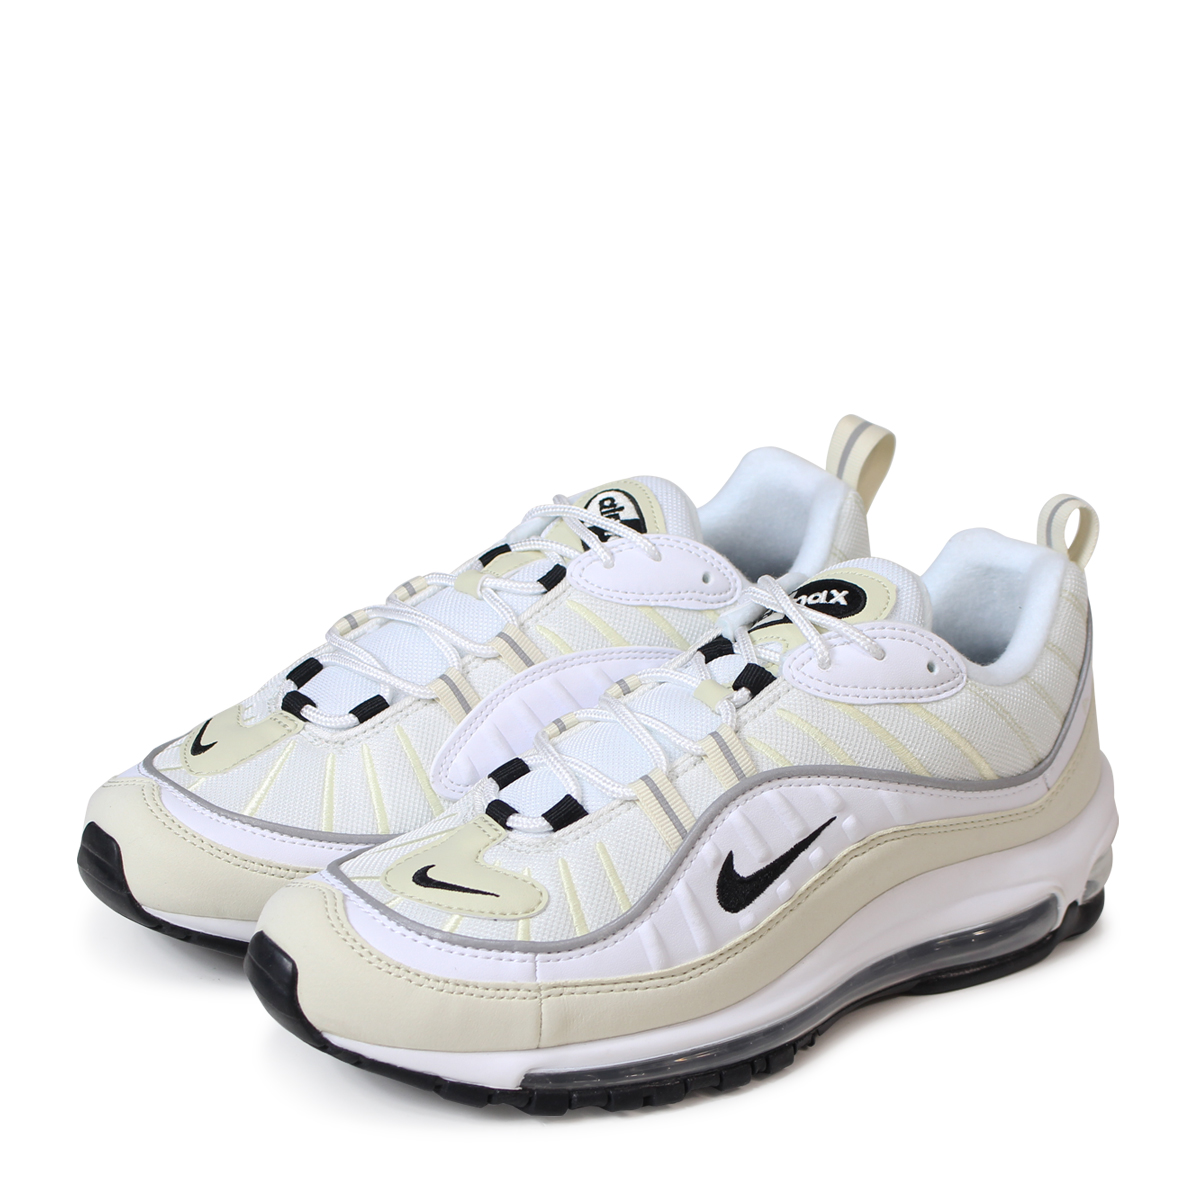 NIKE WMNS AIR MAX 98 Kie Ney AMAX 98 sneakers men AH6799-102 white  load  planned Shinnyu load in reservation product 5 18 containing   185  ad5df792b